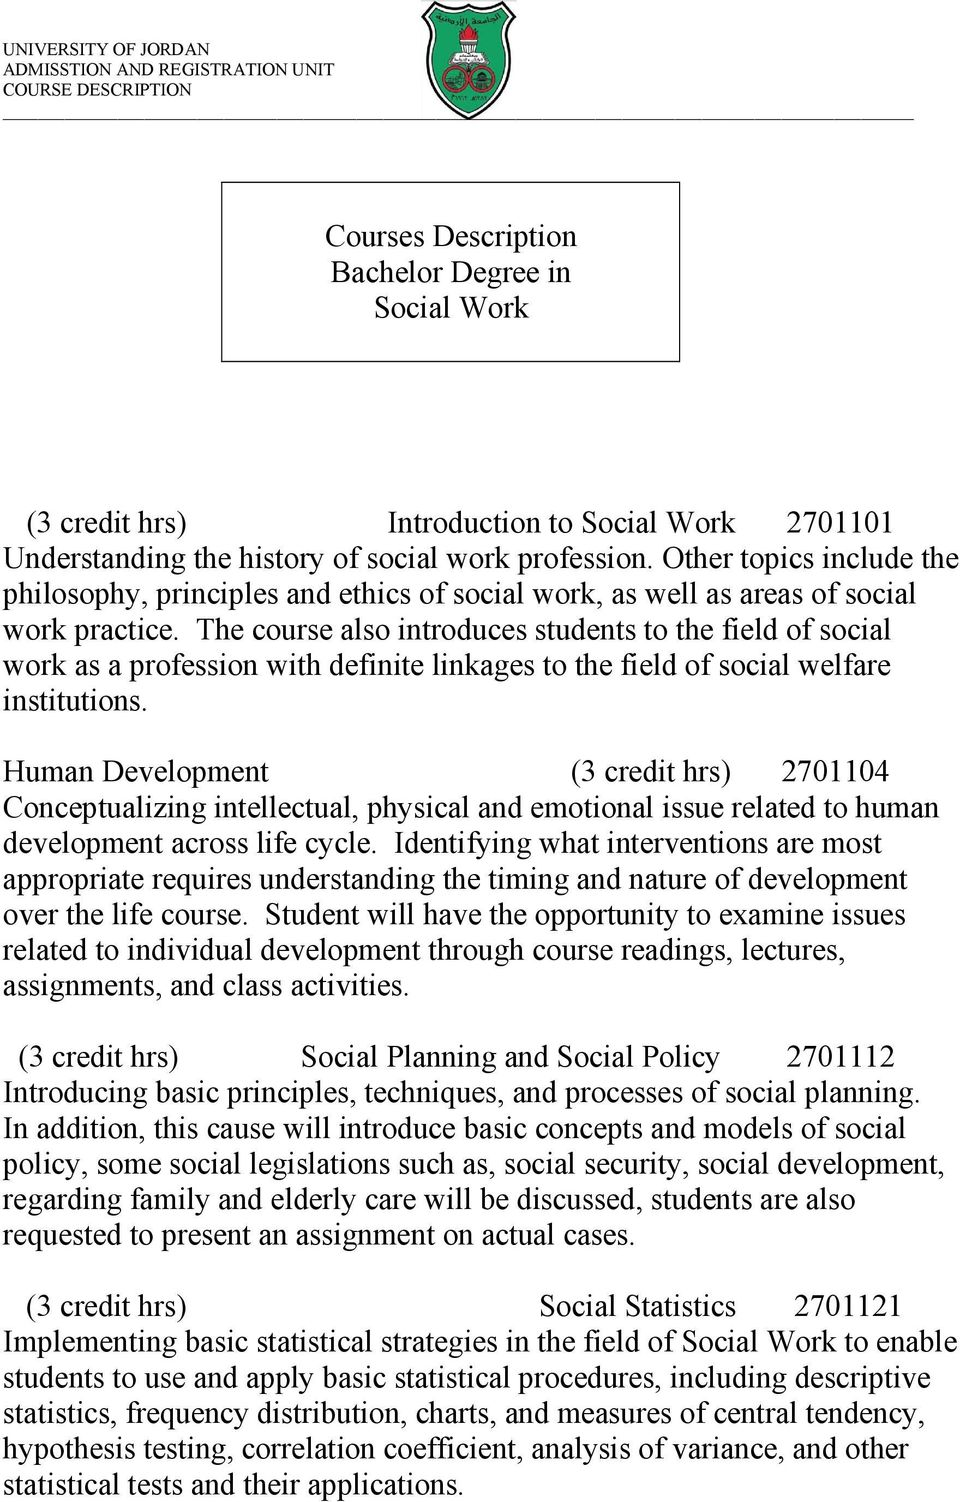 The course also introduces students to the field of social work as a profession with definite linkages to the field of social welfare institutions.